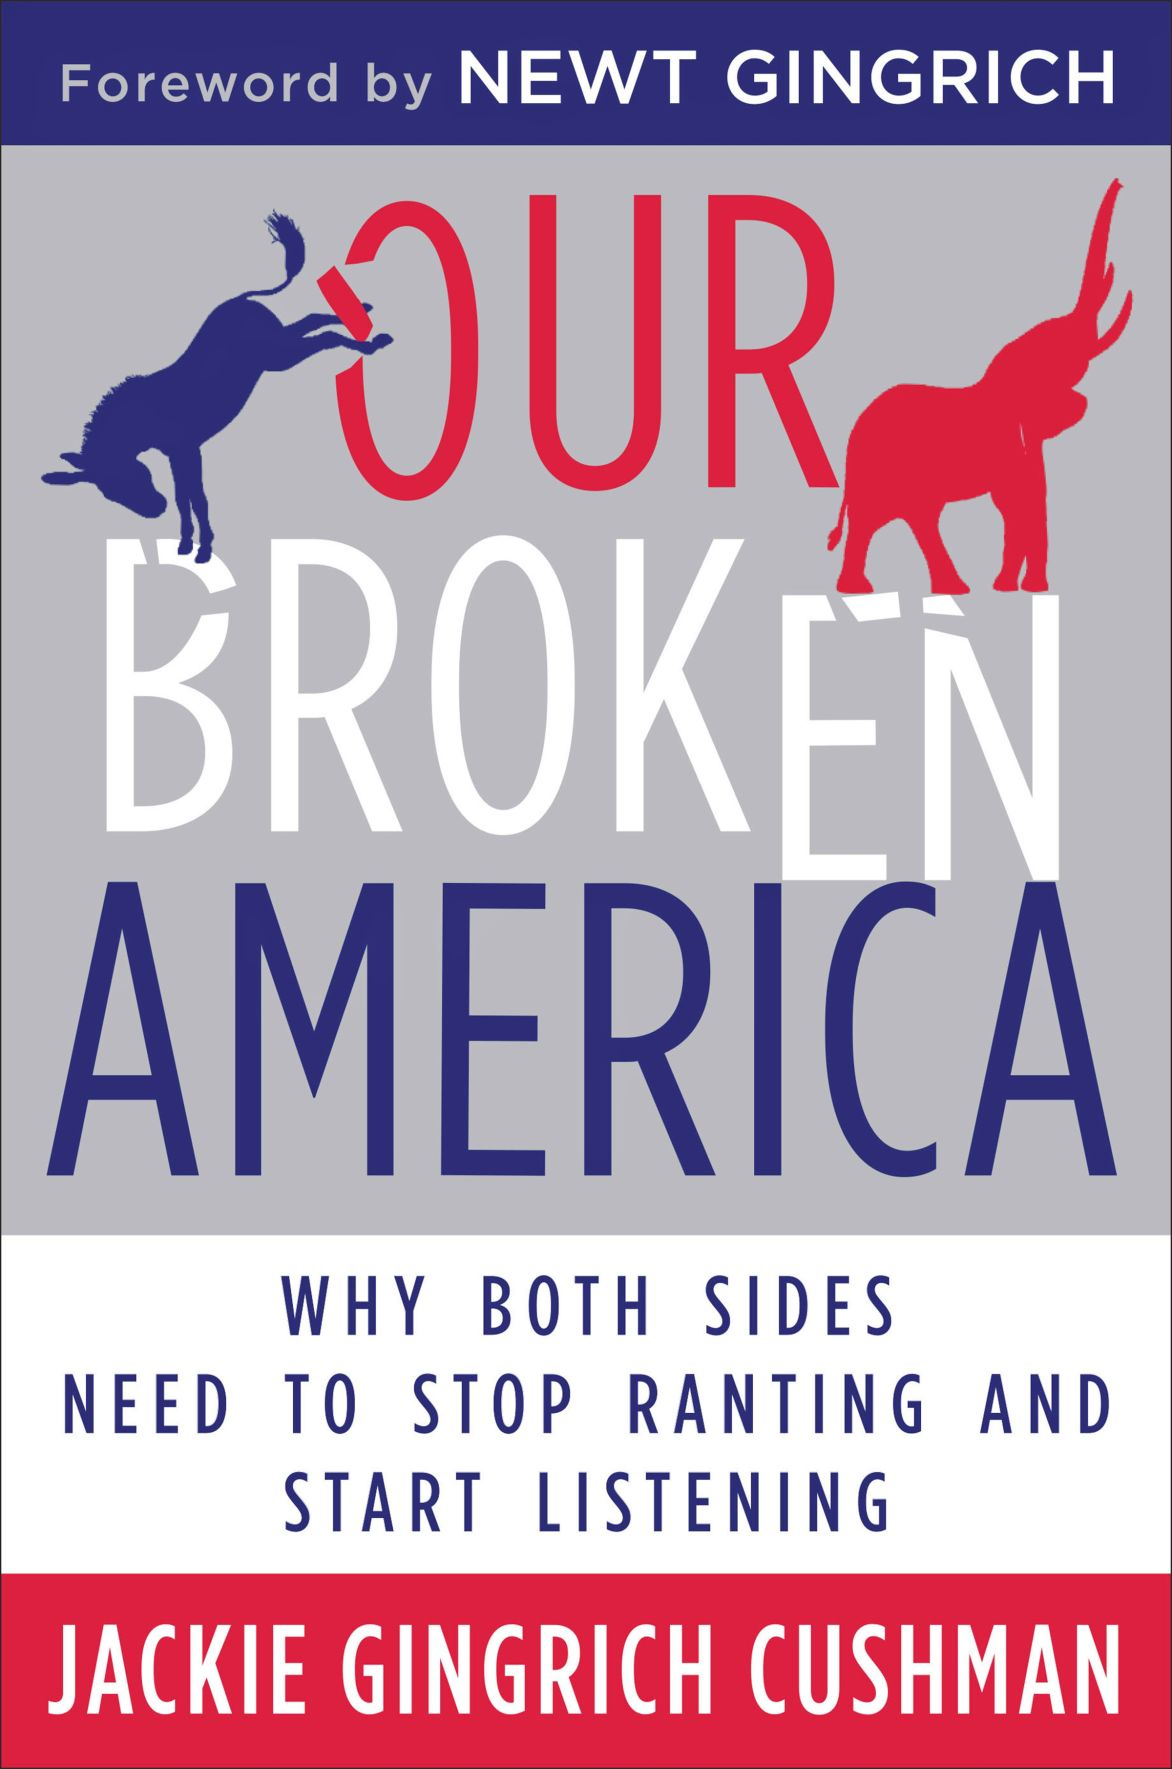 091819_MNS_Cushman_book_002 Our Broken America cover